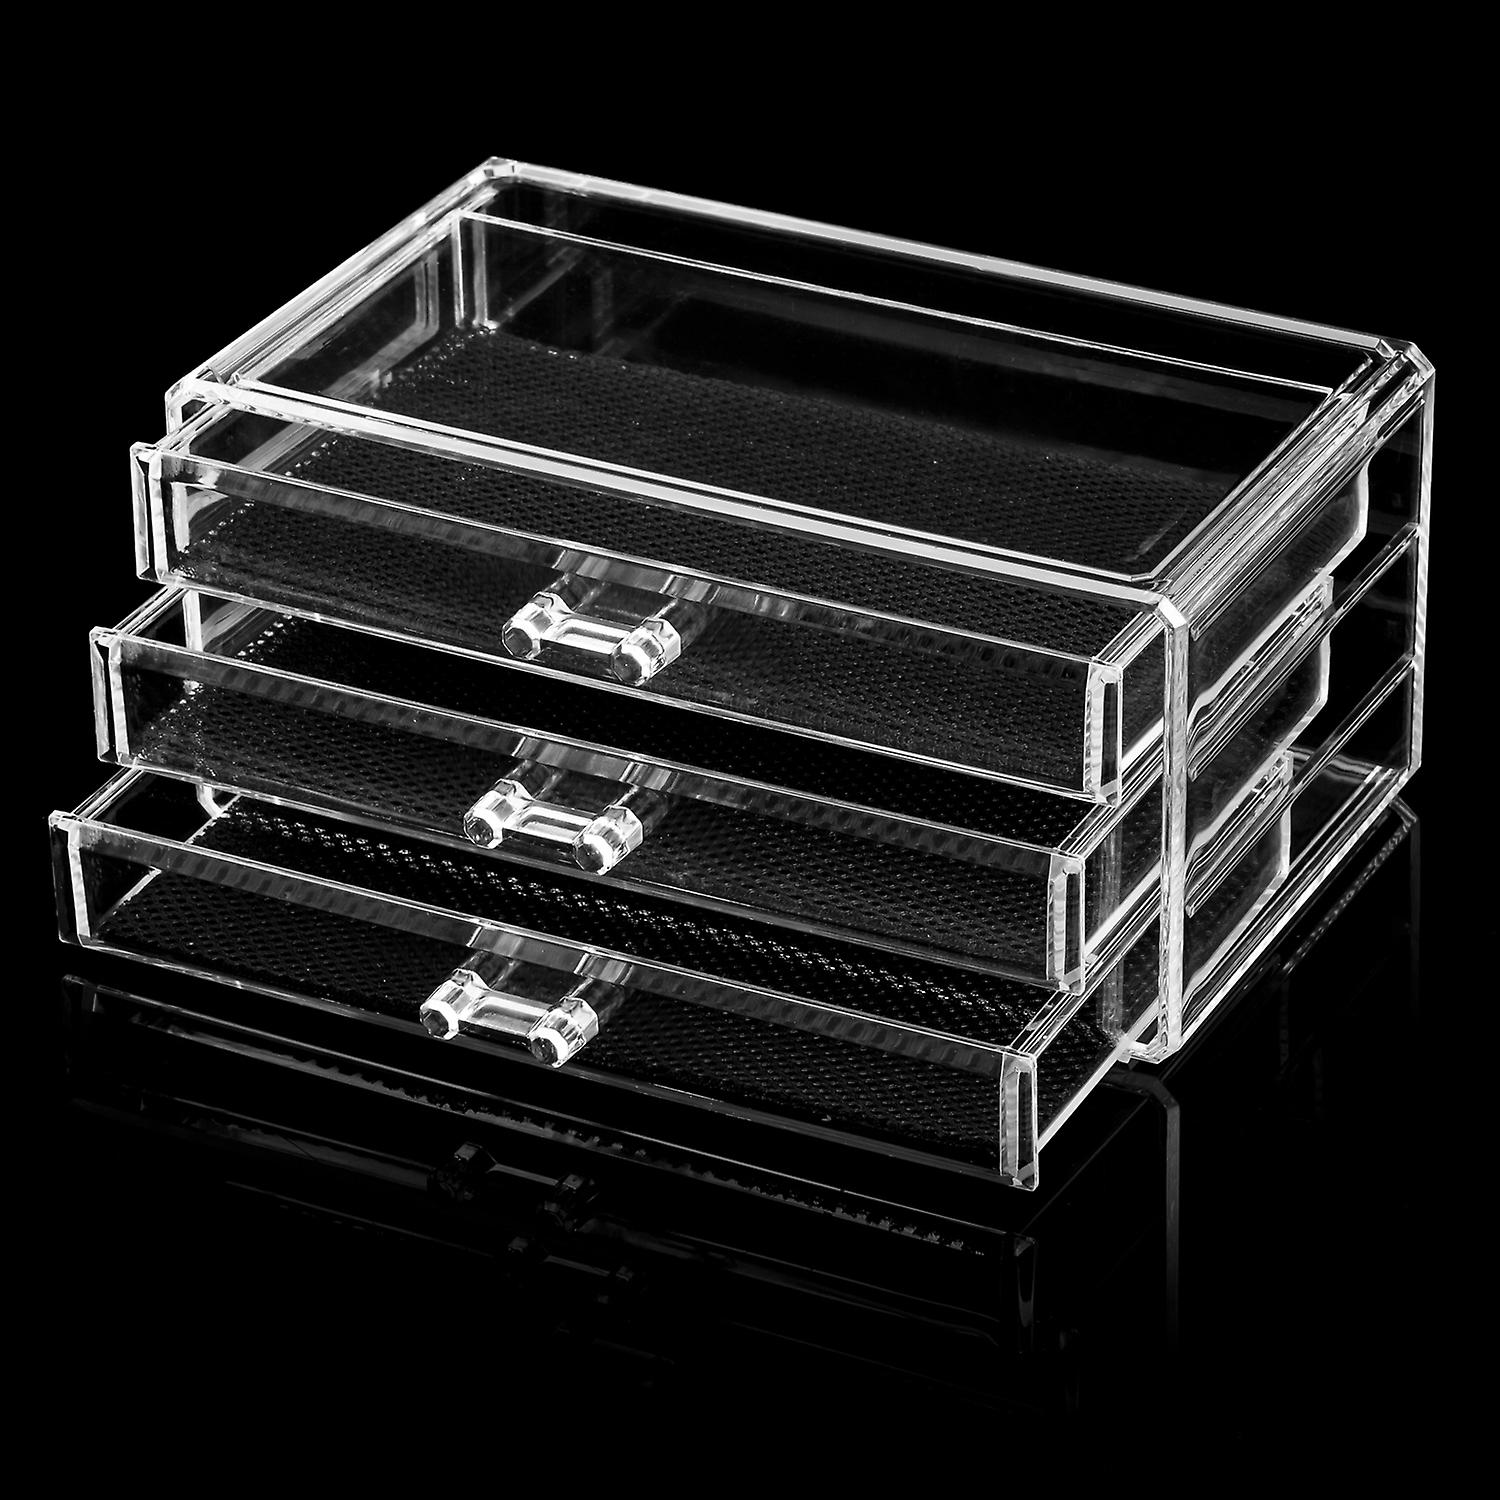 TRIXES Clear Acrylic Desk Cosmetic Lipstick Makeup Holder Brushes Mascara Organiser